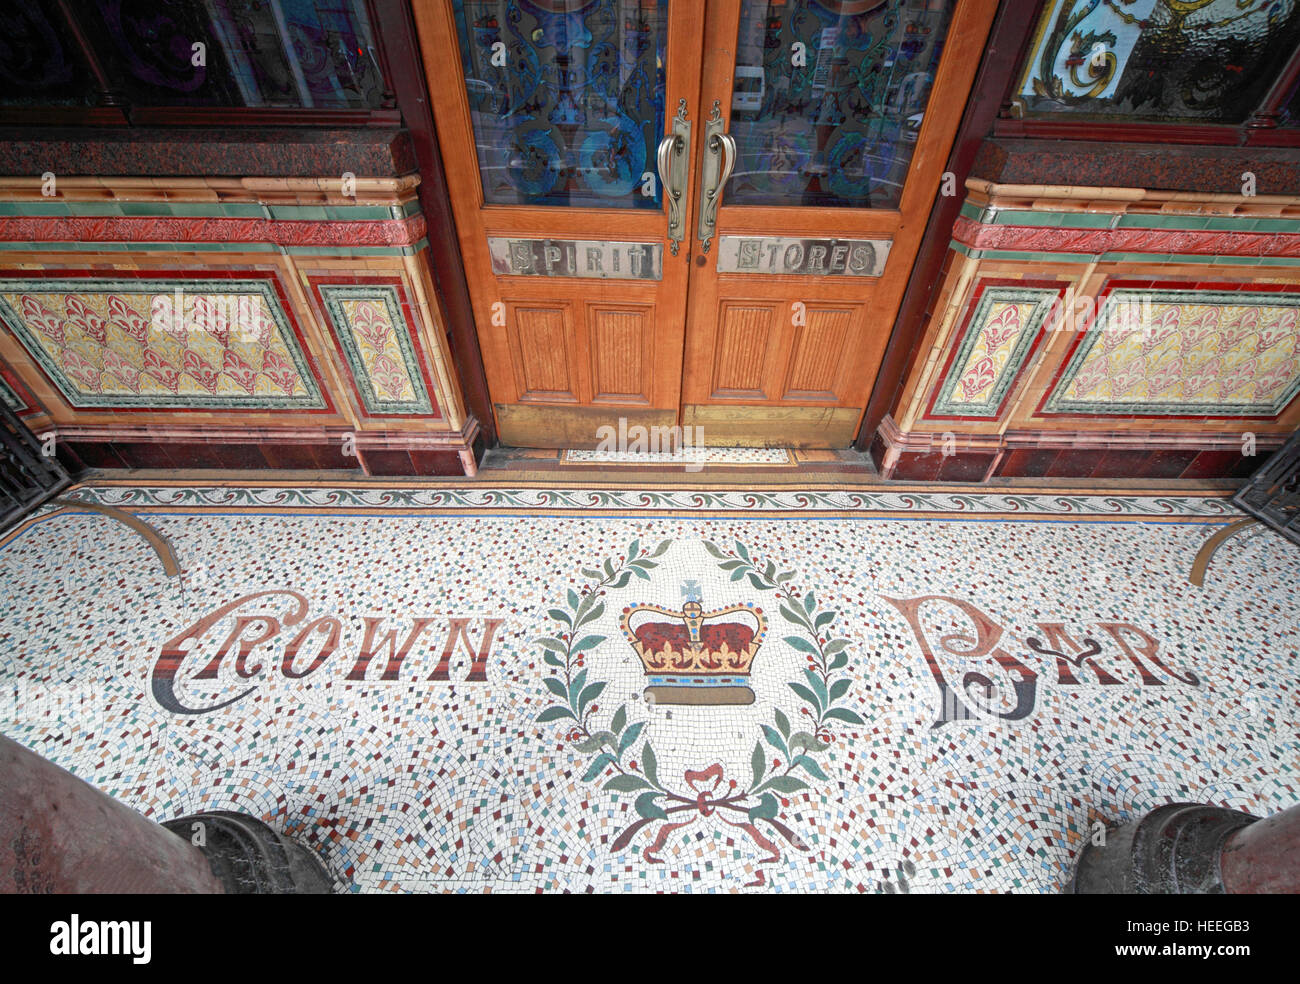 Famous Crown Bar,Gt Victoria St,Belfast Mosaic entrance floor, Northern Ireland,UK - Stock Image